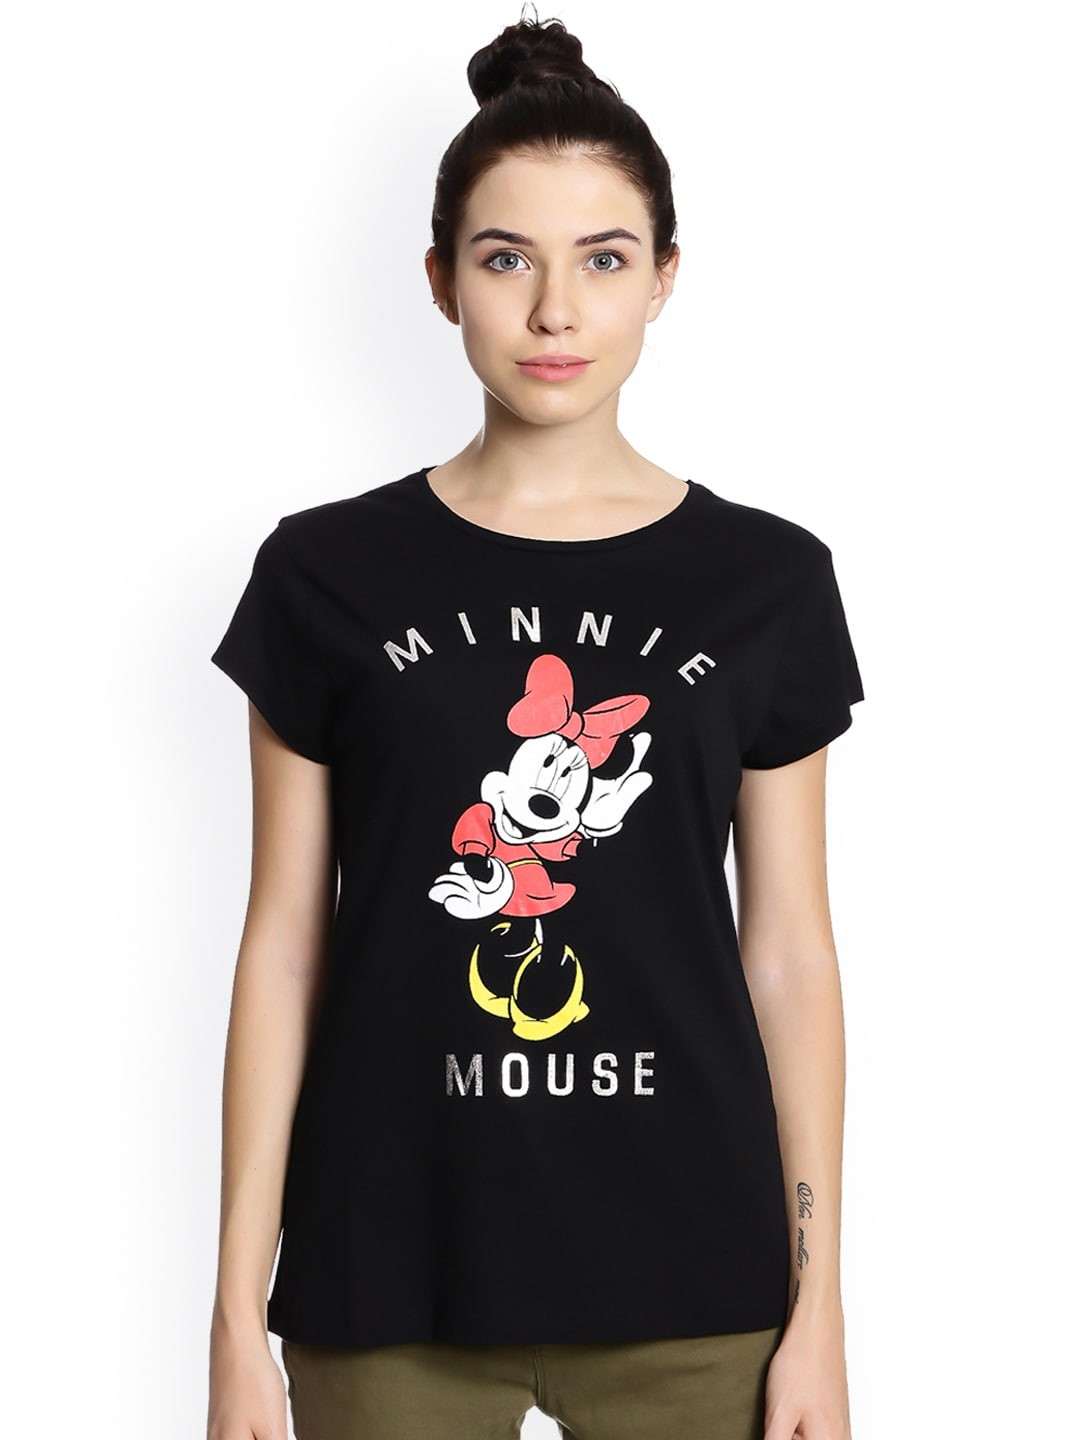 4caba7cd13 Mickey Mouse Tshirts - Buy Mickey Mouse Tshirts Online in India